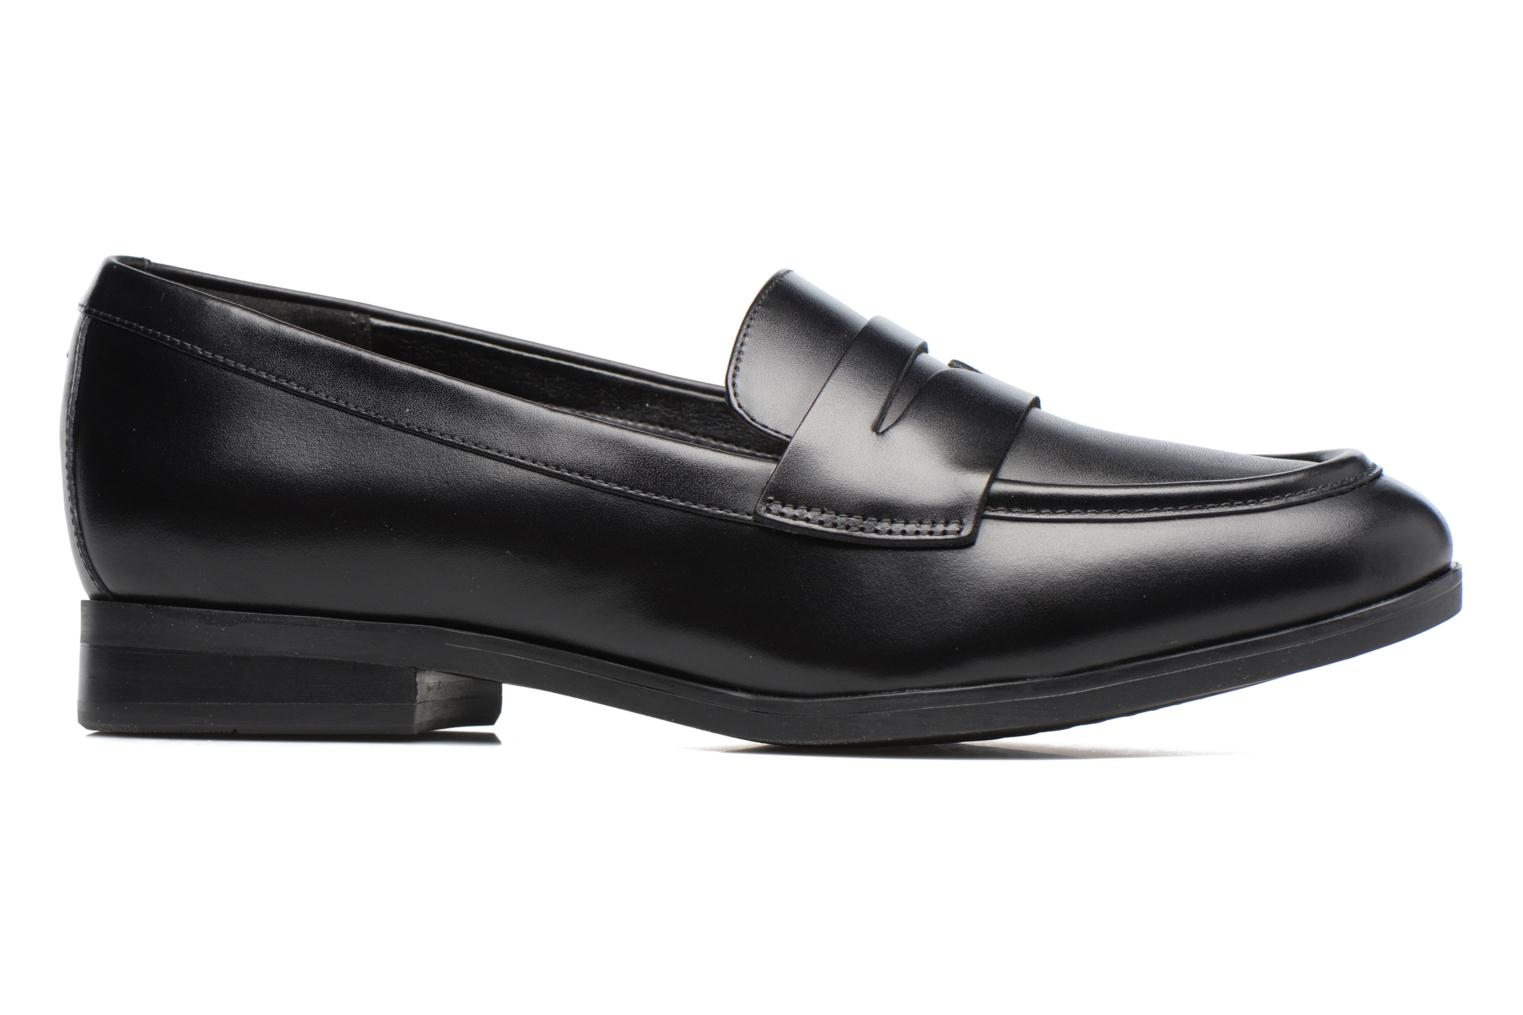 Tilmont Zoe Black leather